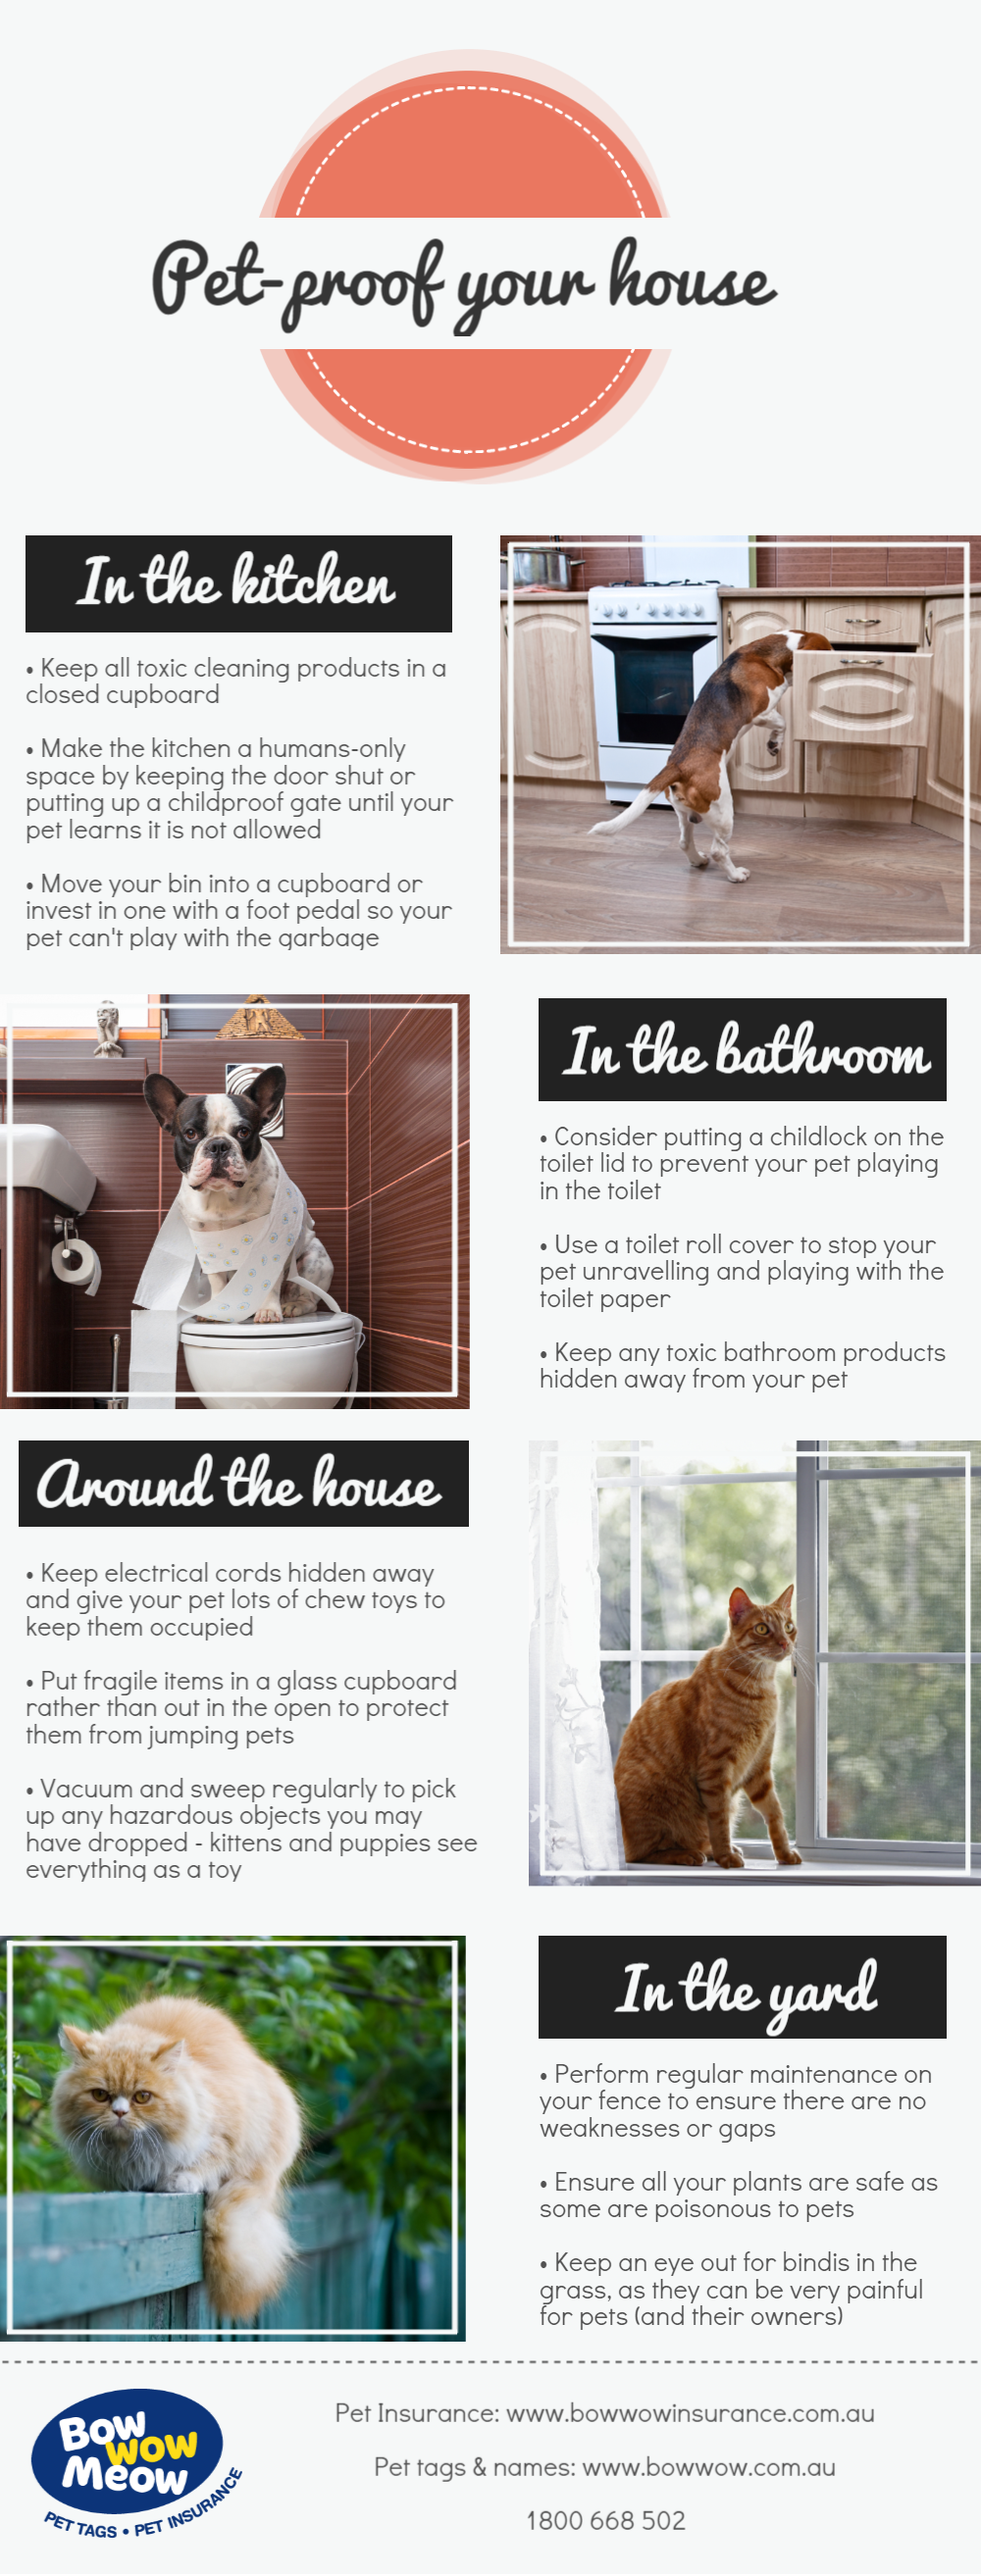 How to petproof your house dogs cats www